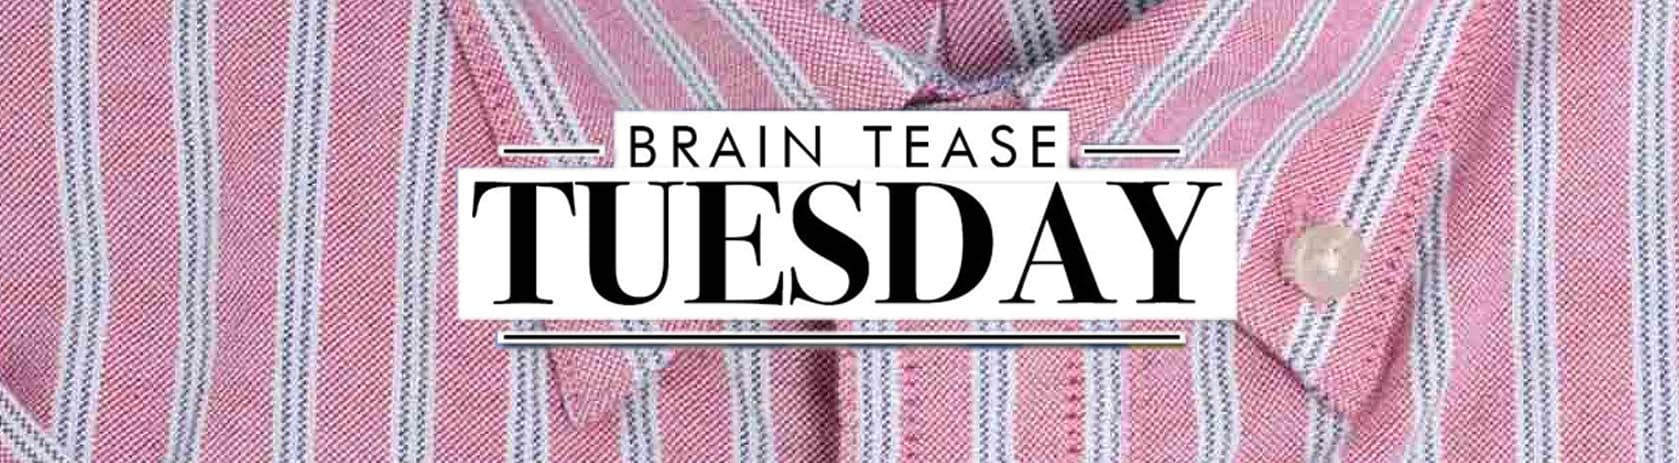 Brain Tease Tuesday Week 26